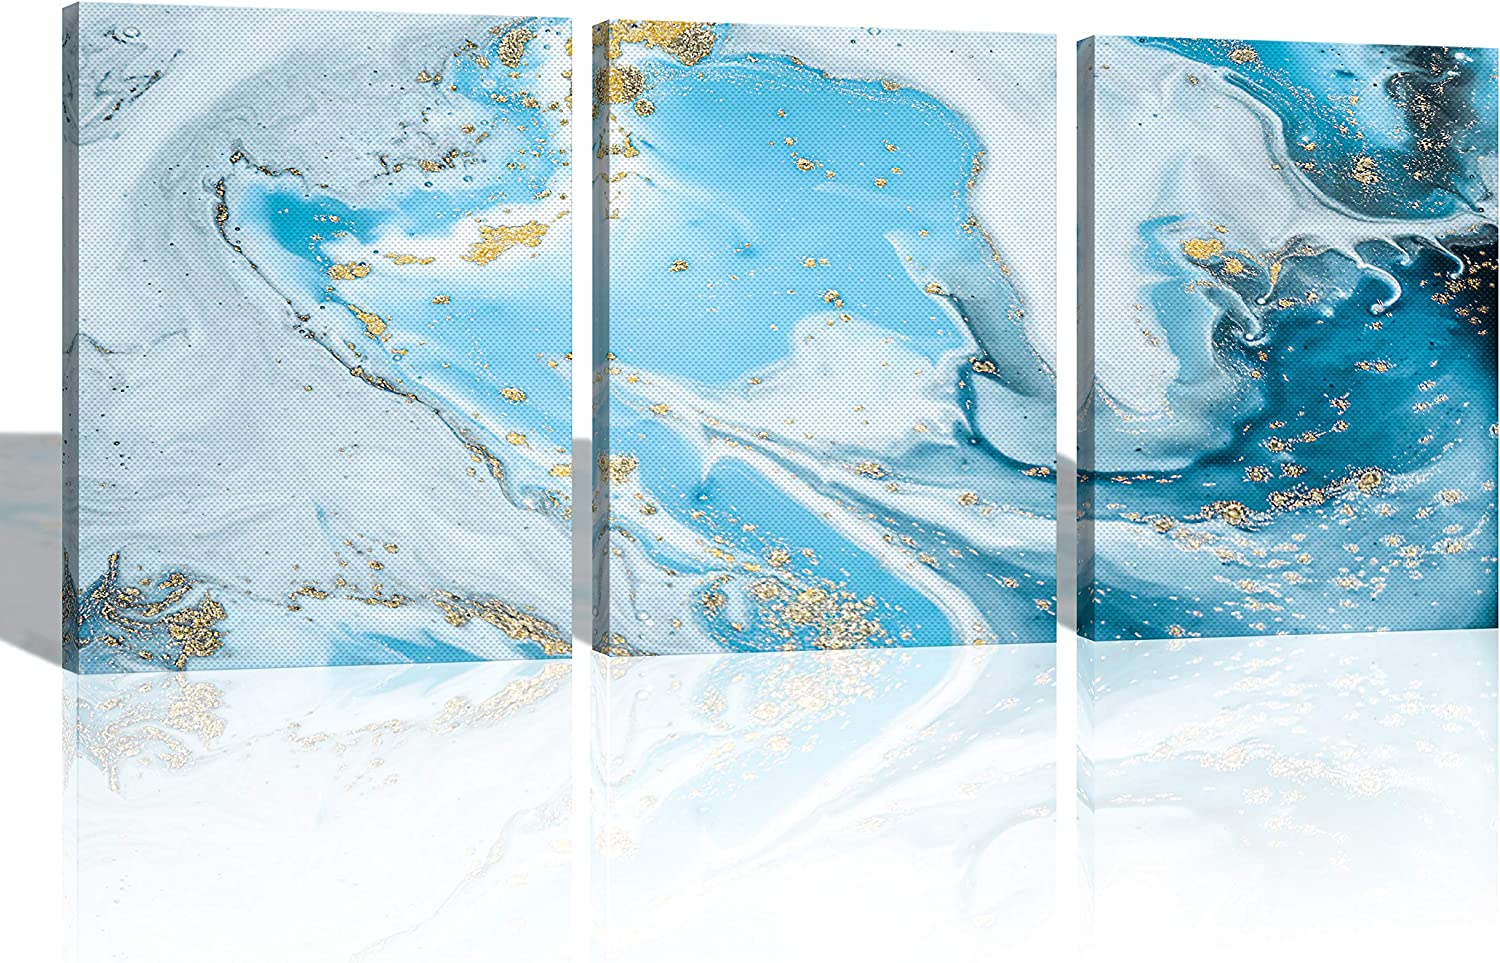 Oiney Sky Blue Abstract Canvs Wall Art 3 Panels Marble Modern Wall Art Decor for Home,Office,Hotel